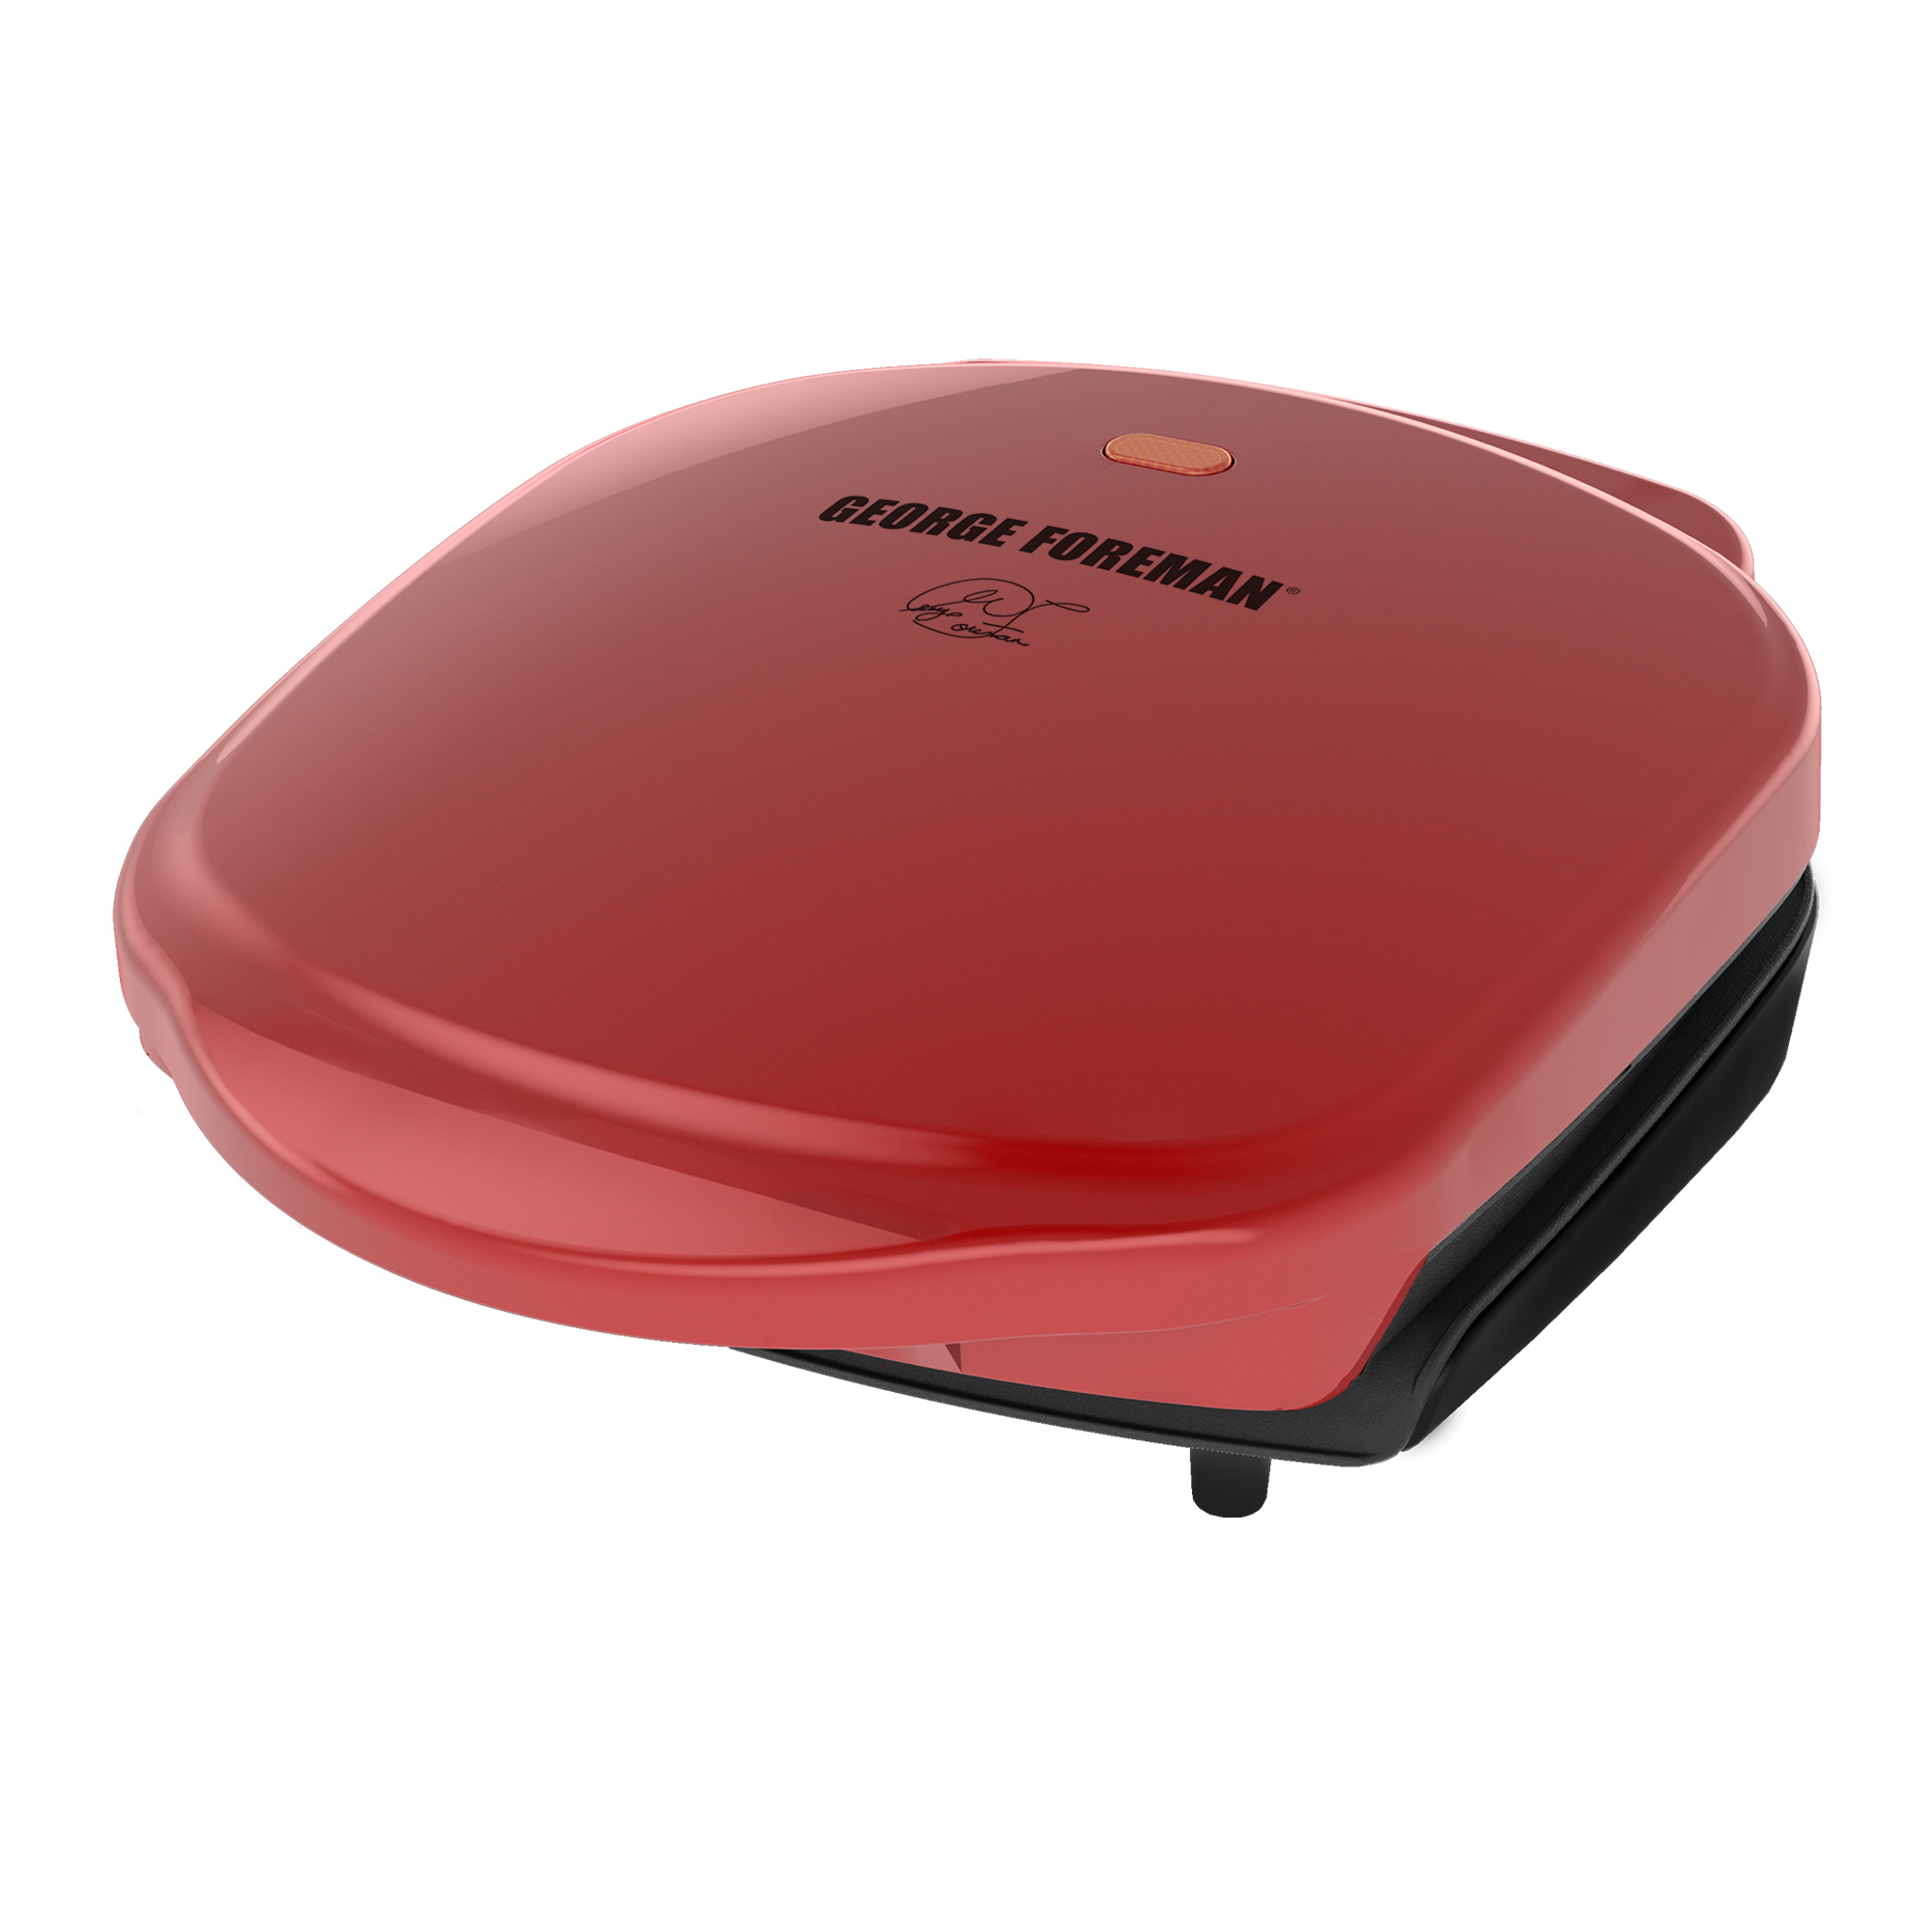 George Foreman 2-Serving Classic Plate Electric Indoor Grill and Panini Press Only $13.99